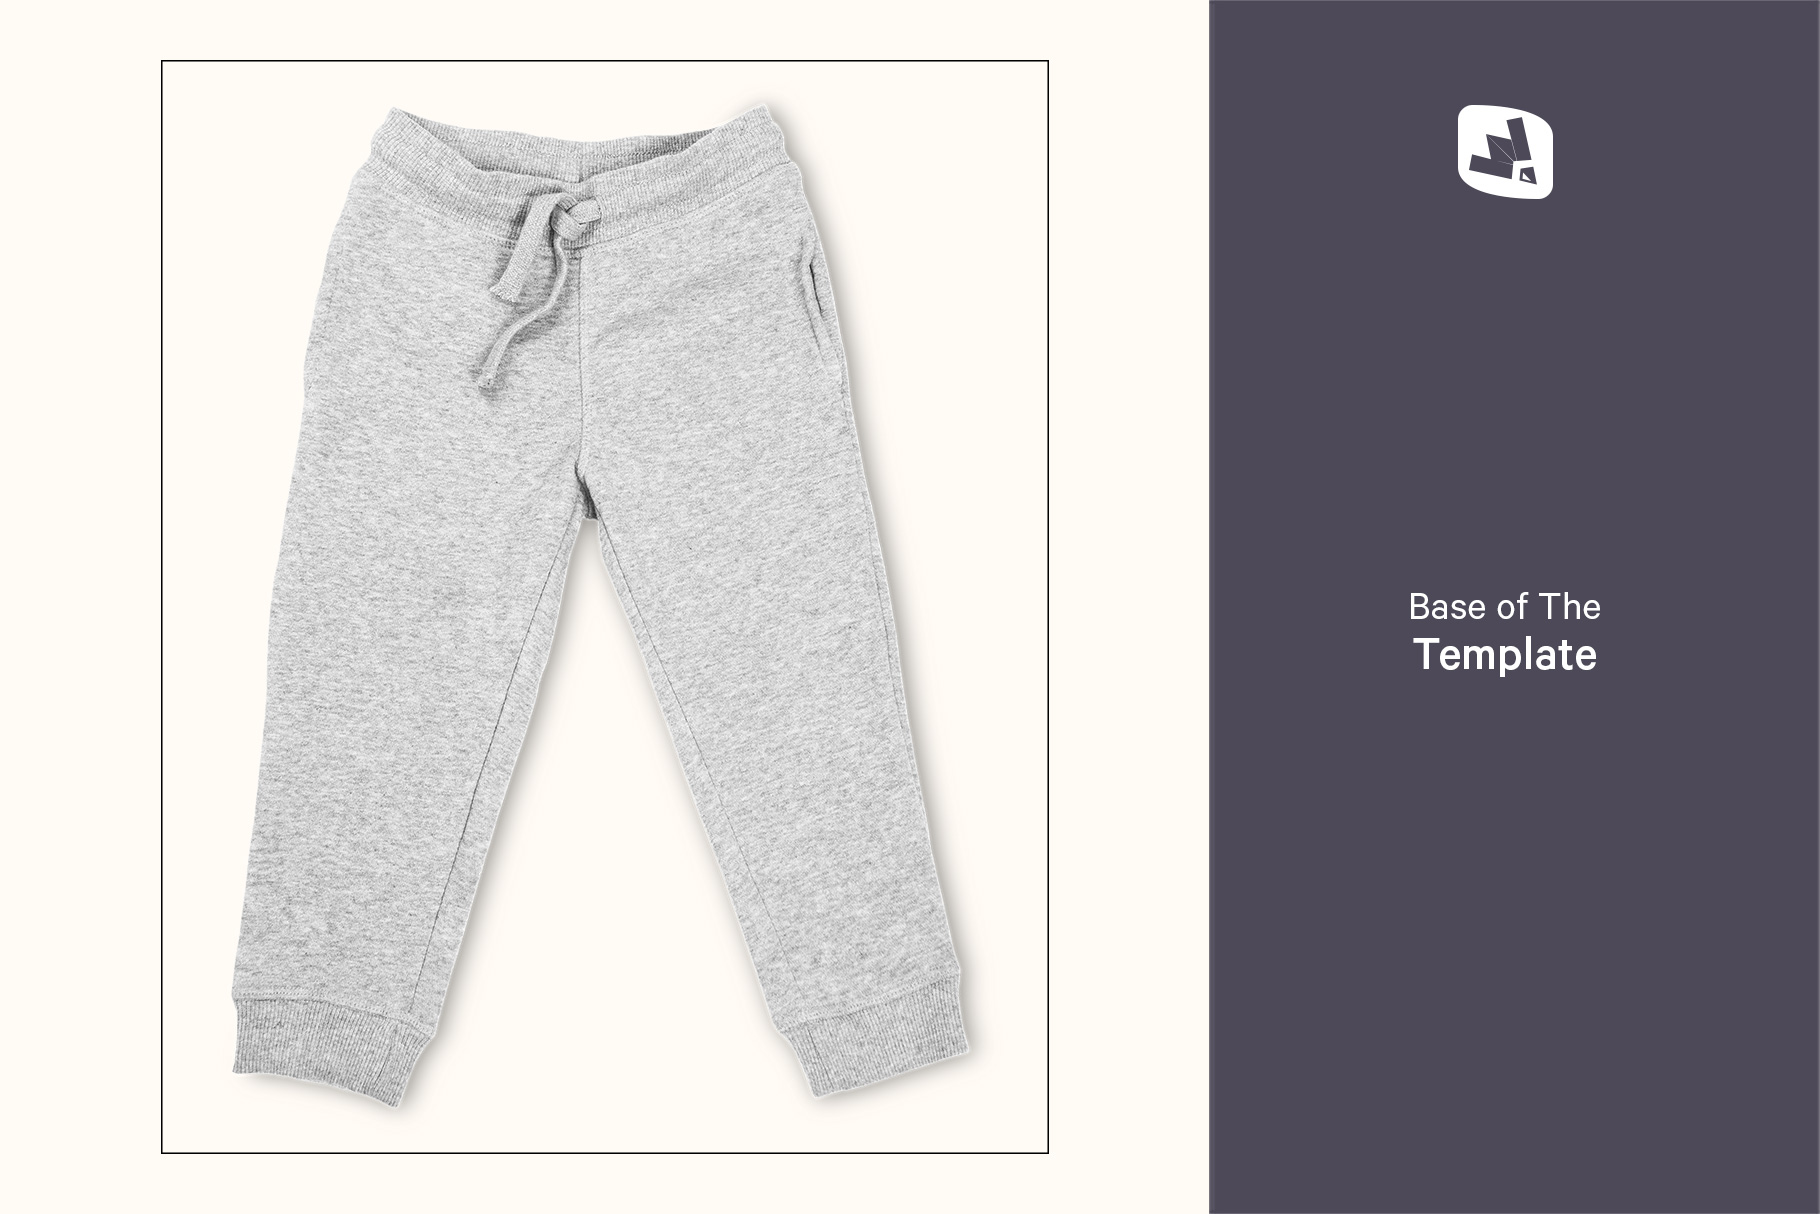 base image of the top view infant track pants mockup